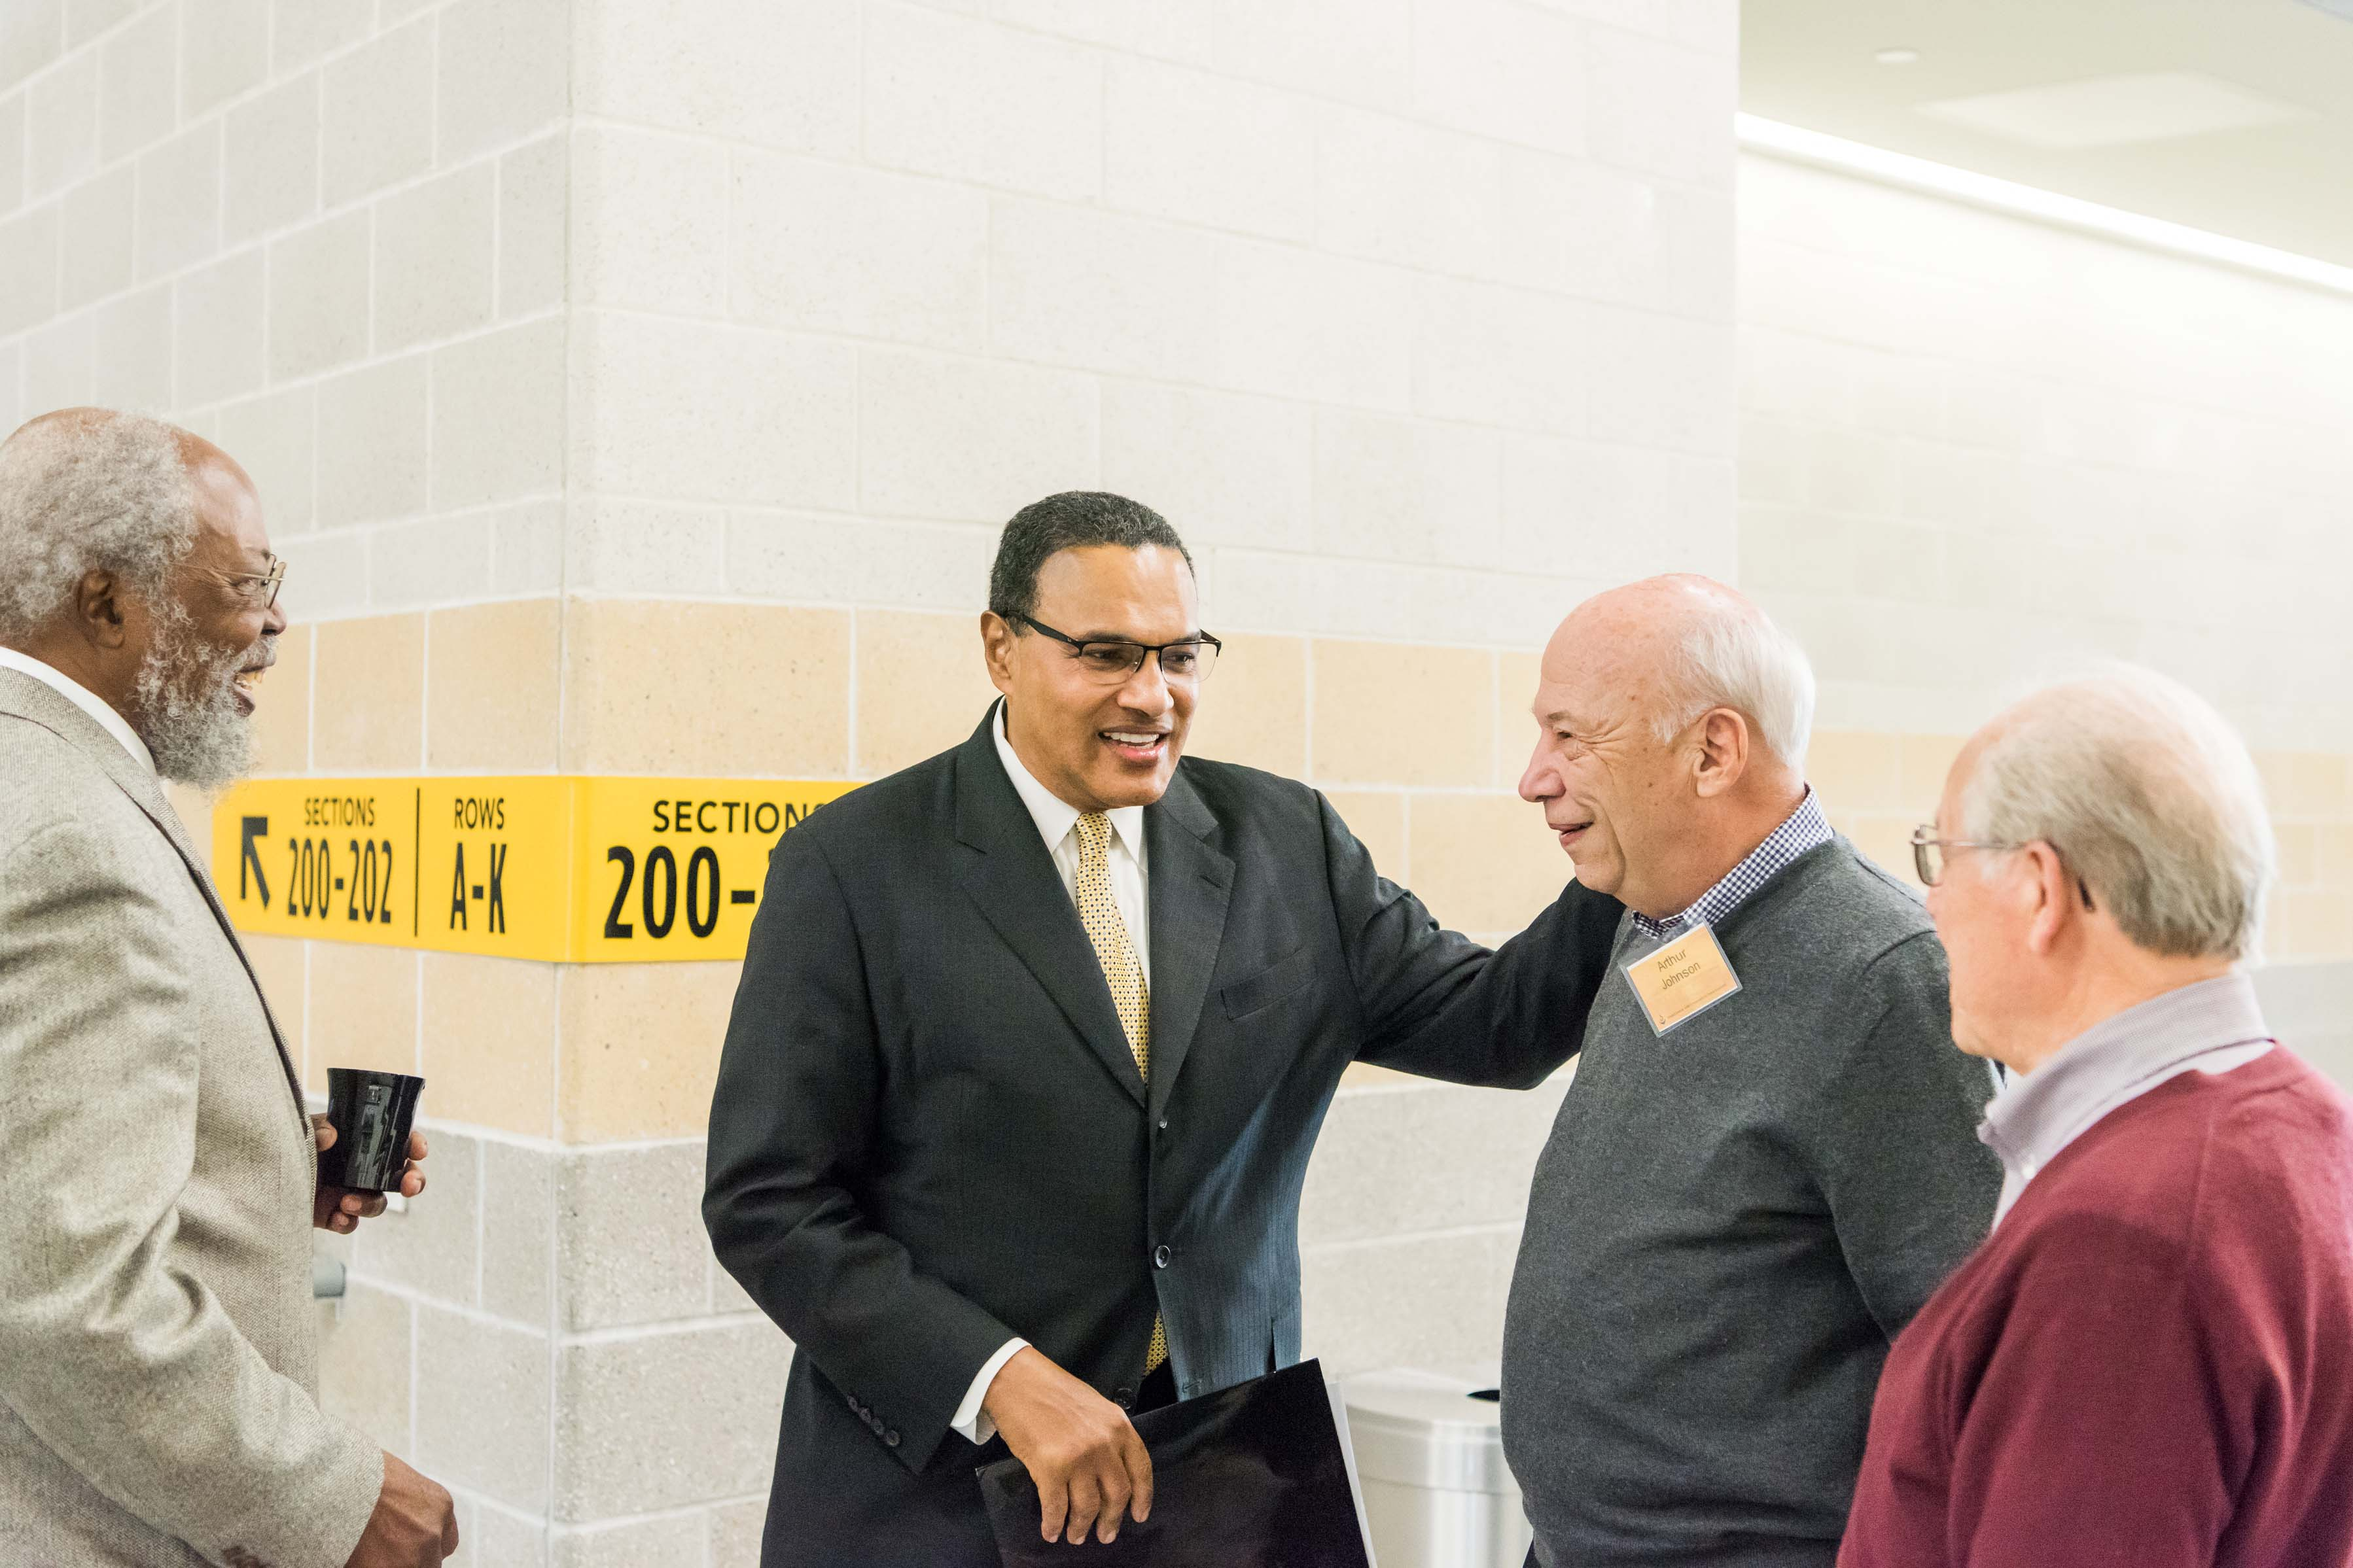 Hrabowski smiles and talks with people at Wisdom Institute lunch